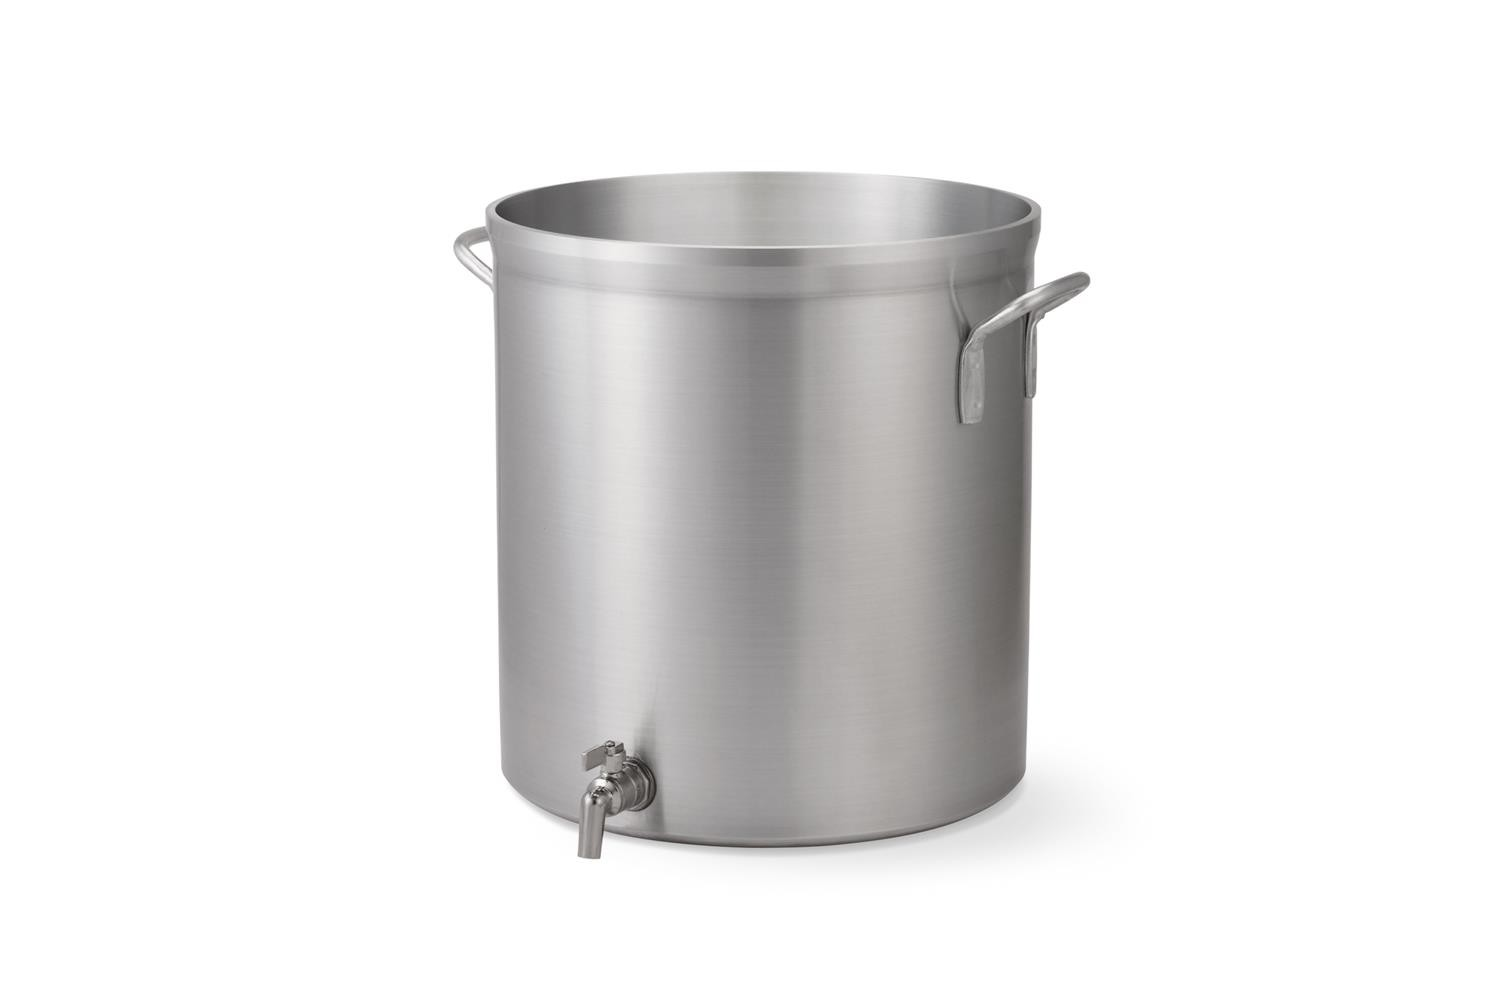 Vollrath 68631 Wear-Ever Classic Select Heavy-Duty Aluminum Stock Pot with Faucet 32 Qt.